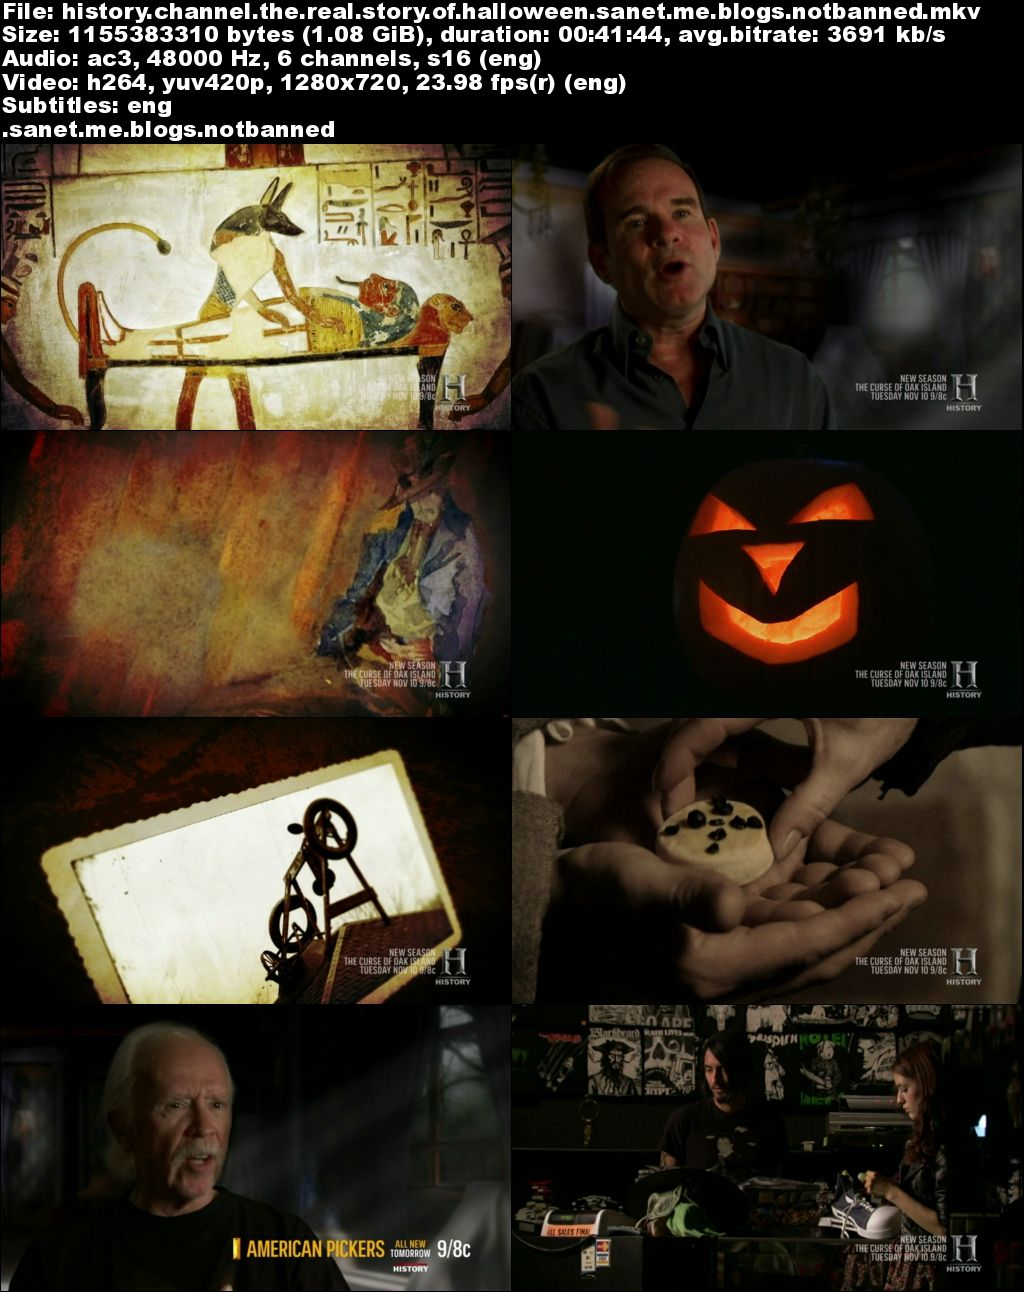 download history channel - the real story of halloween (2015) 720p